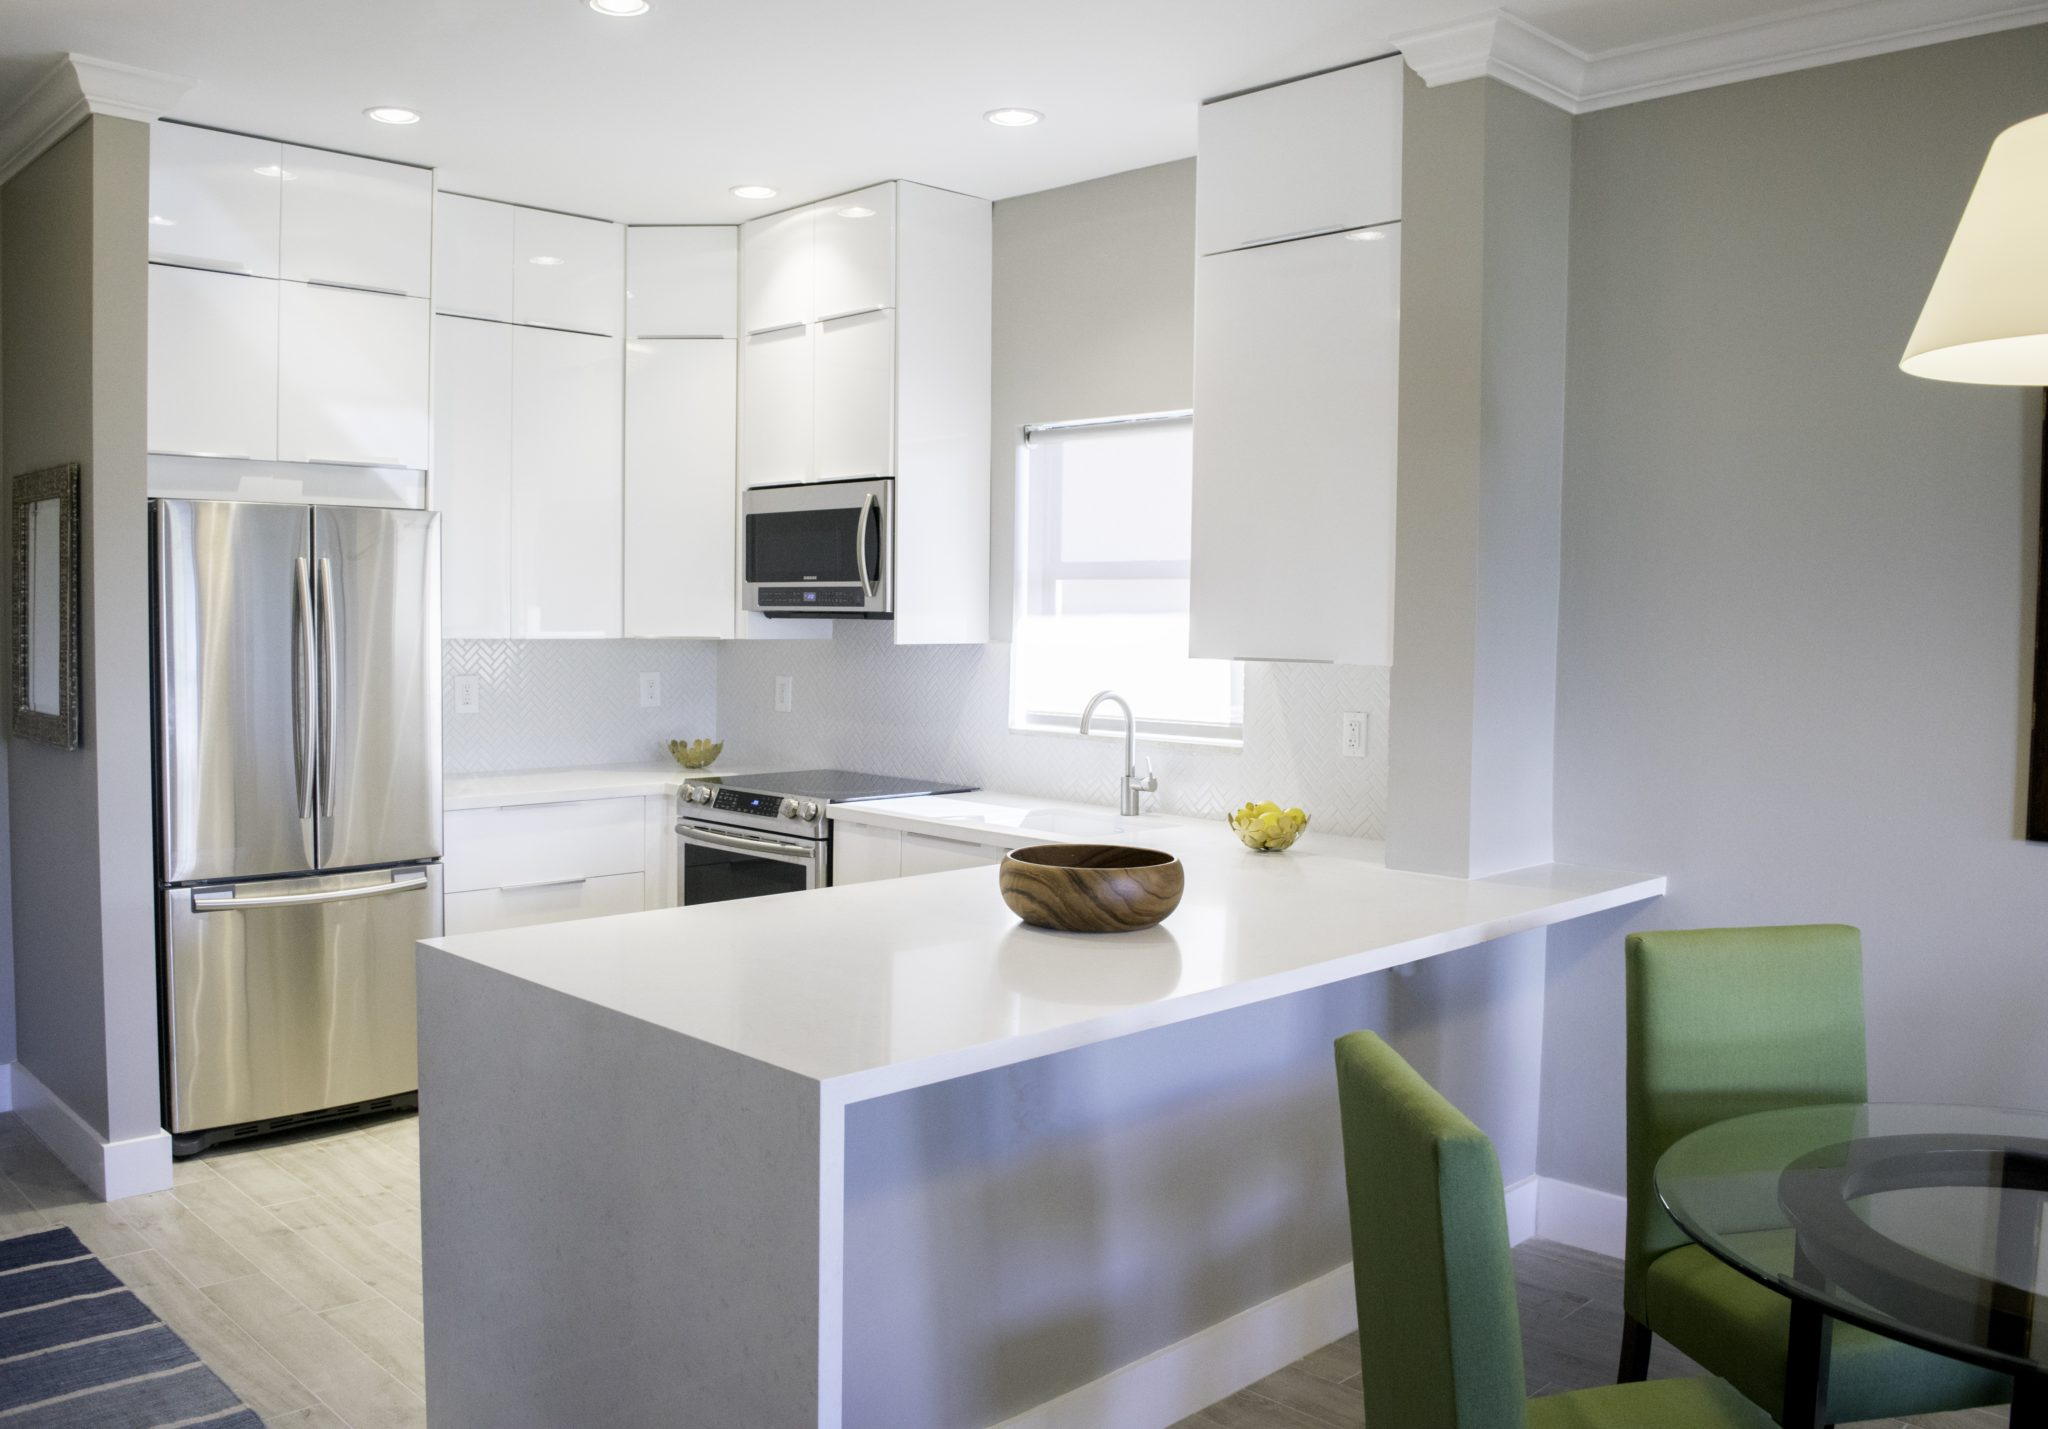 Modern Key Biscayne Kitchen in high-gloss white cabinetry and waterfall surfaces by mr. alex TATE